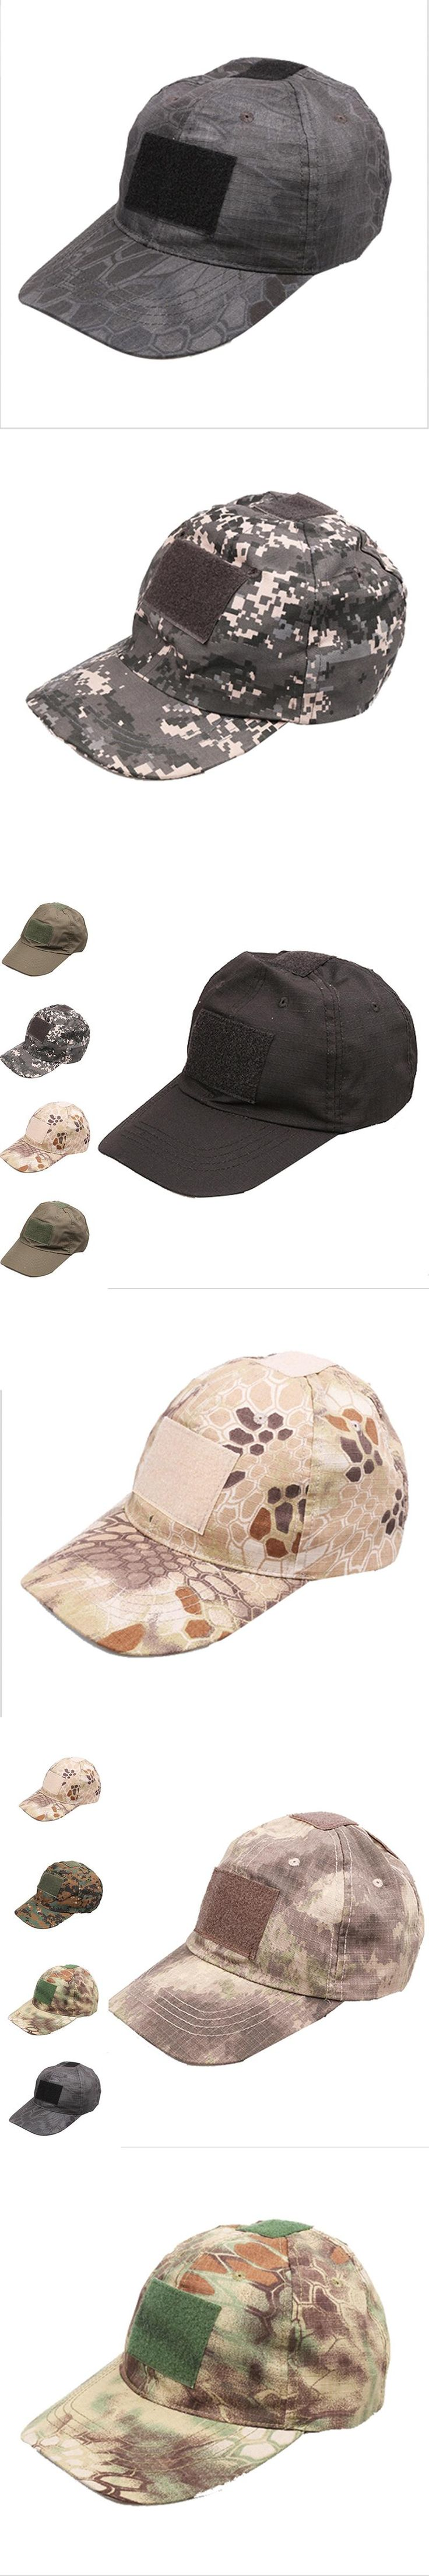 Mens Army Camo Cap Baseball Casquette Camouflage Hats For Men Hunting Camouflage Cap Women Blank Desert Camo Hat Male17 color